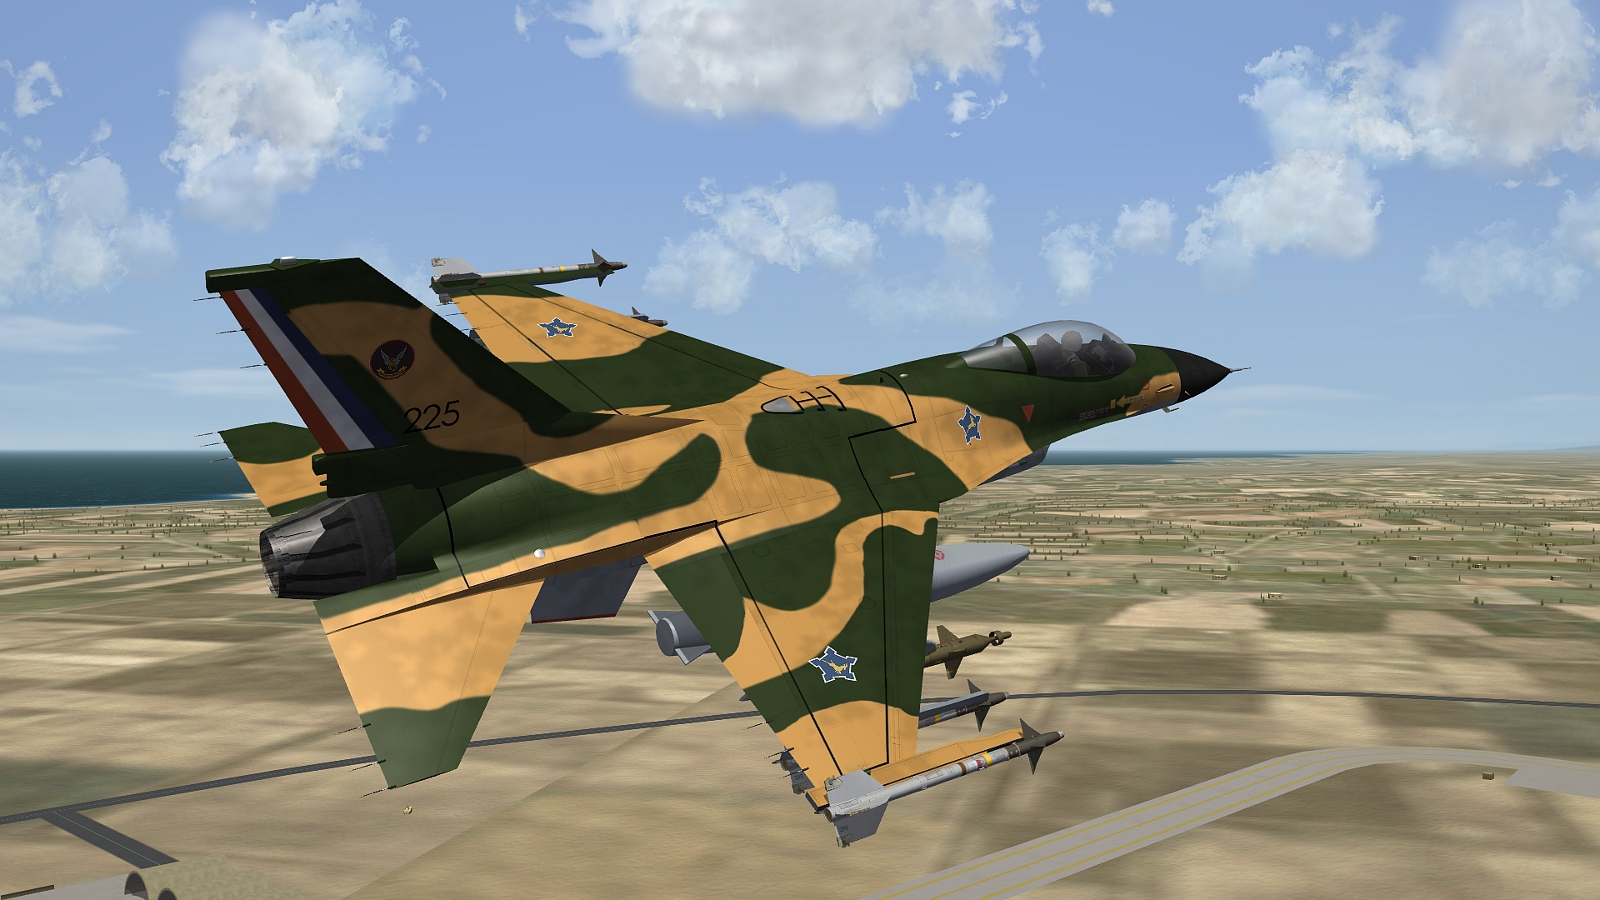 [Fictional] General Dynamics F-16AZ for STRIKE FIGHTERS 2